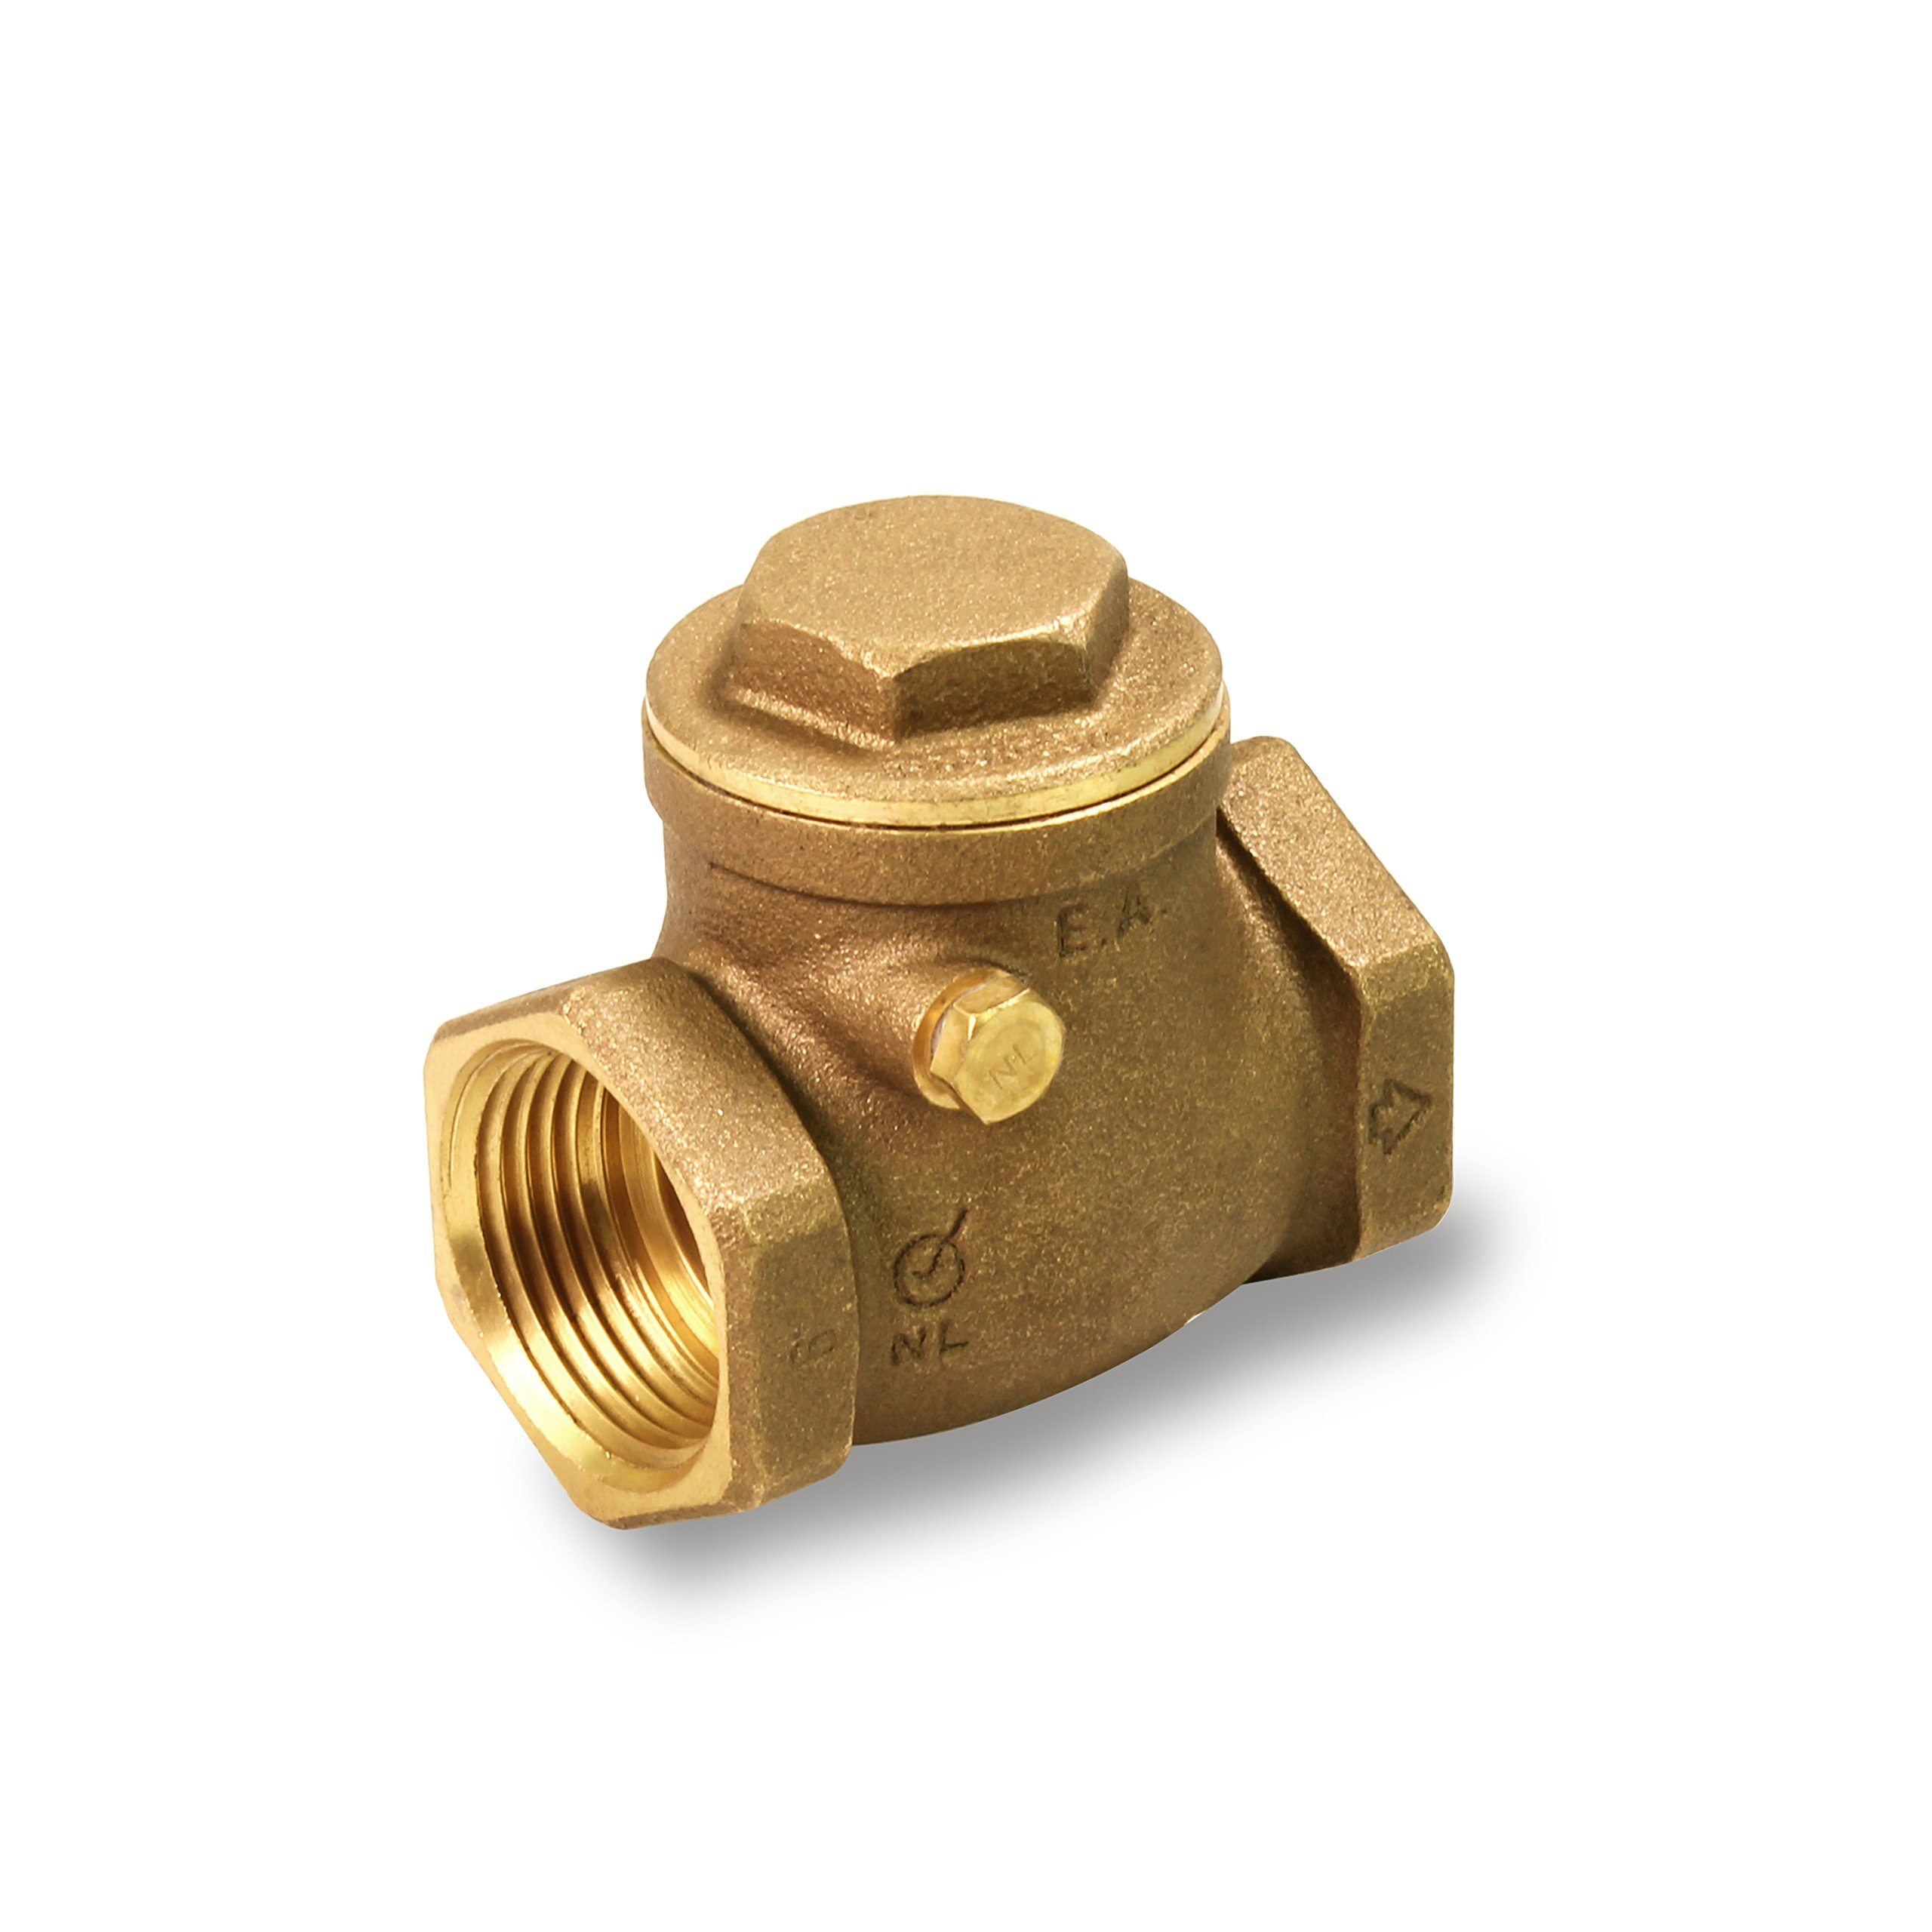 Everflow 210T001-NL 1-Inch Lead Free Brass Swing Check Valve with Female NPT Threaded, 200 PSI WOG & 125 PSI SWP, Brass Construction, Higher Corrosion Resistance Economical, Durable & Easy to Install by Everflow Supplies (Image #1)